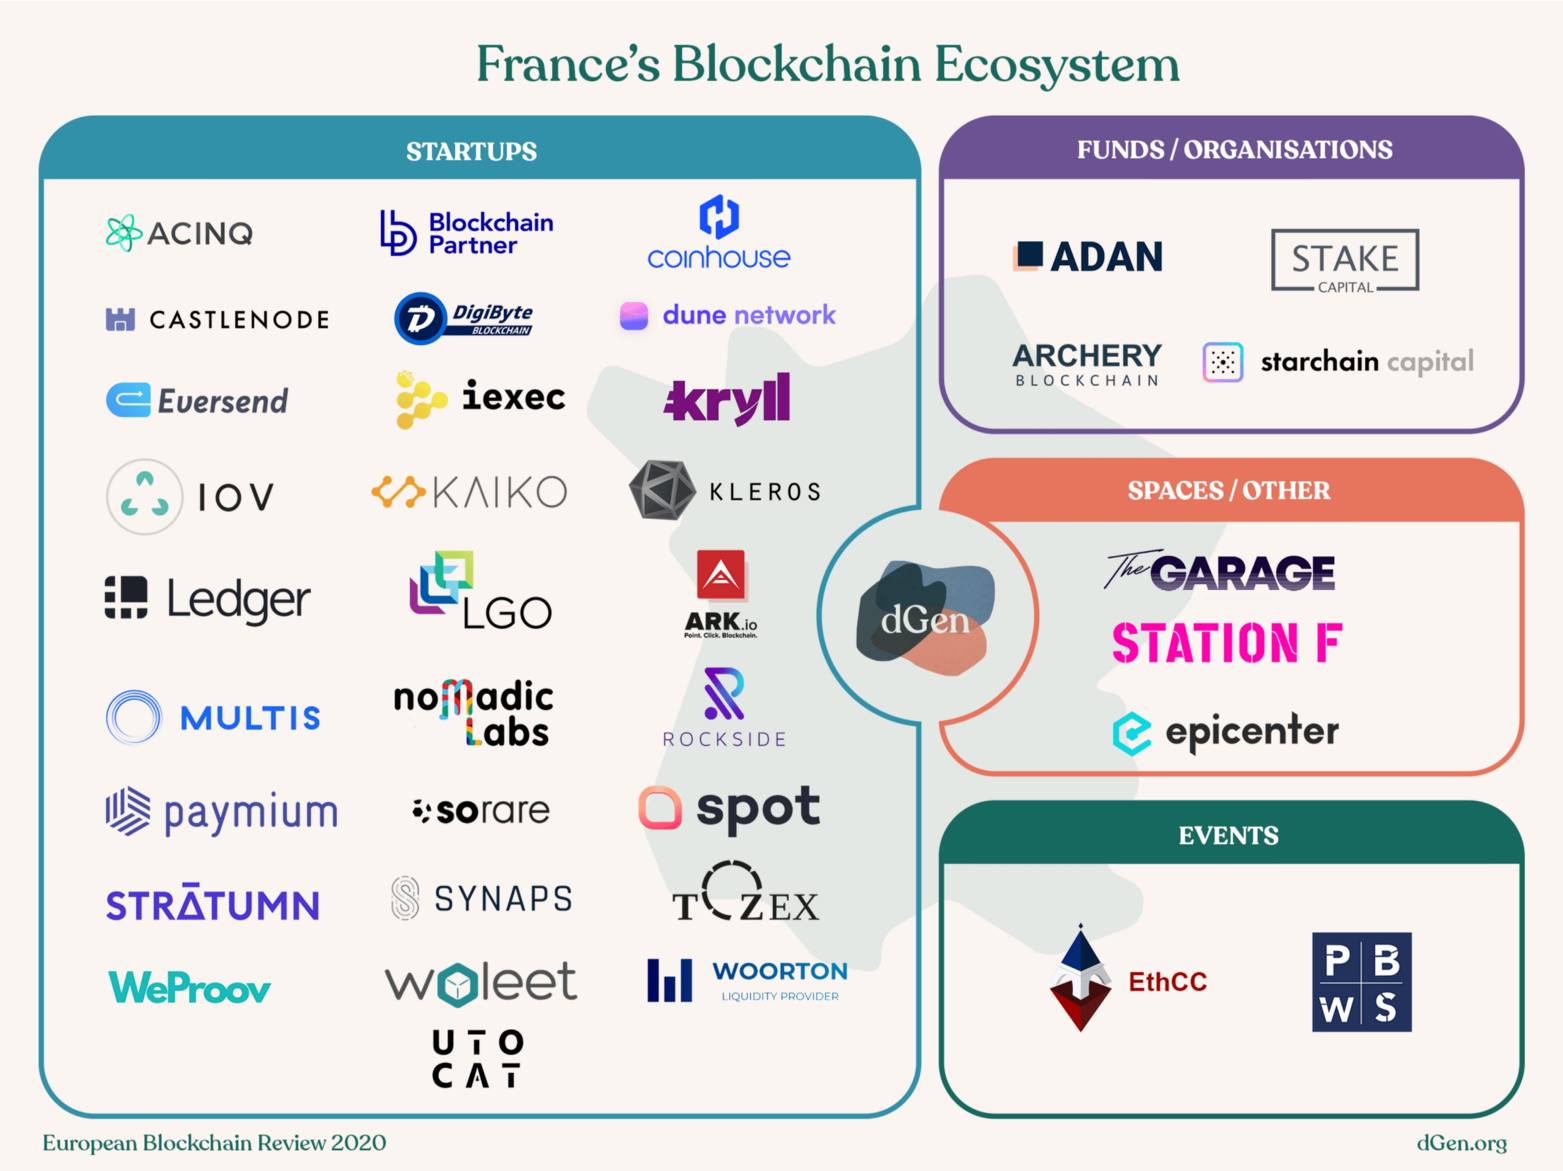 Map of France's major blockchain players, including startups, funds/organisations, space/other, and events.